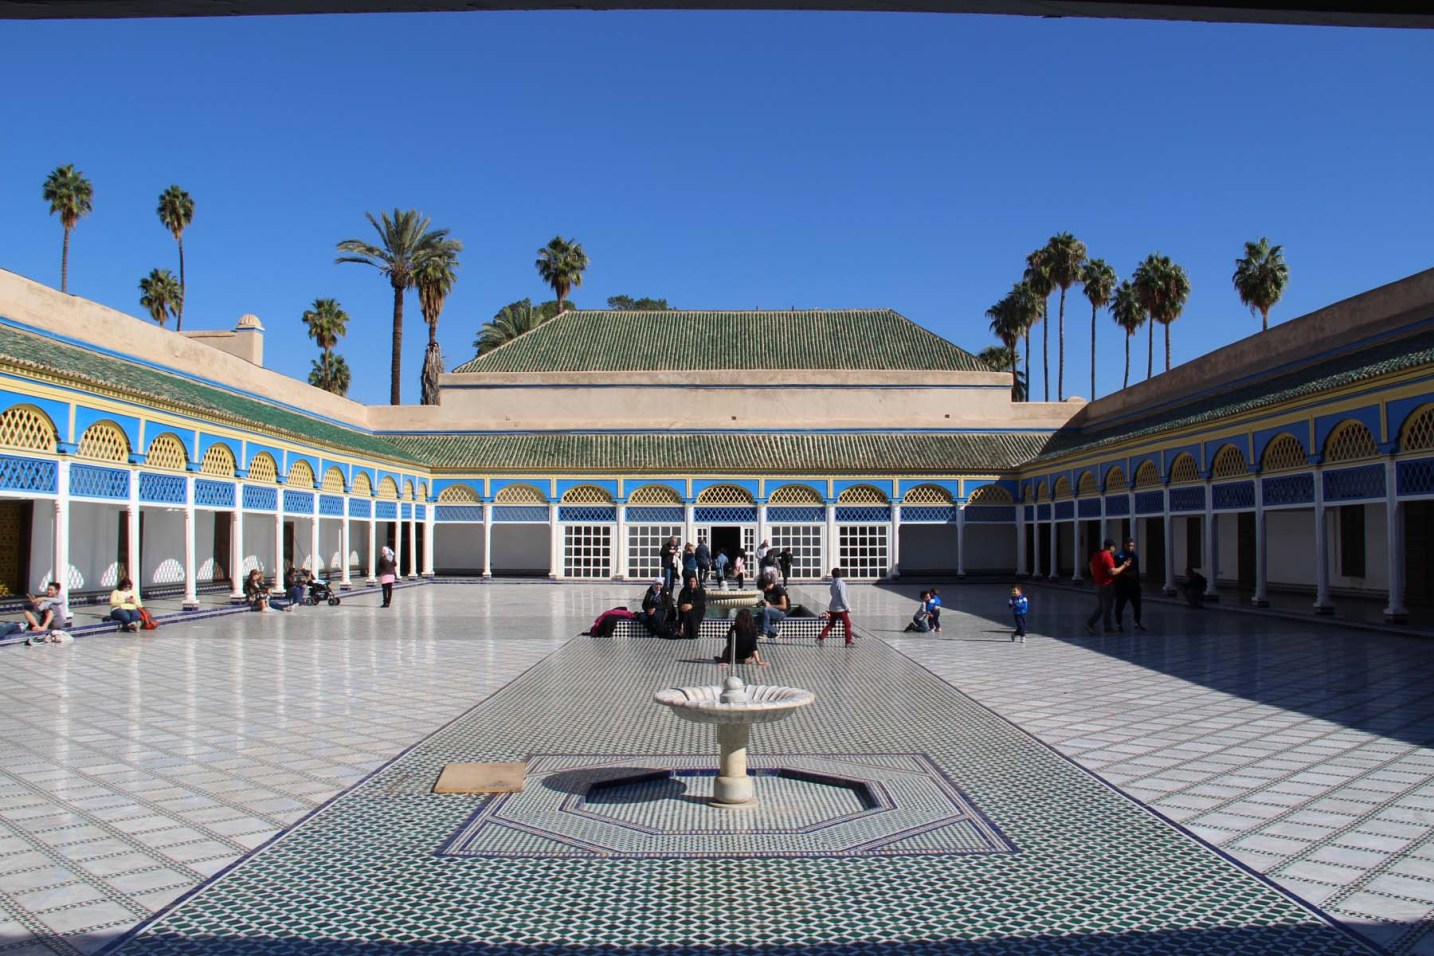 Courtyard with fountain in the Bahia Palace in Marrakech